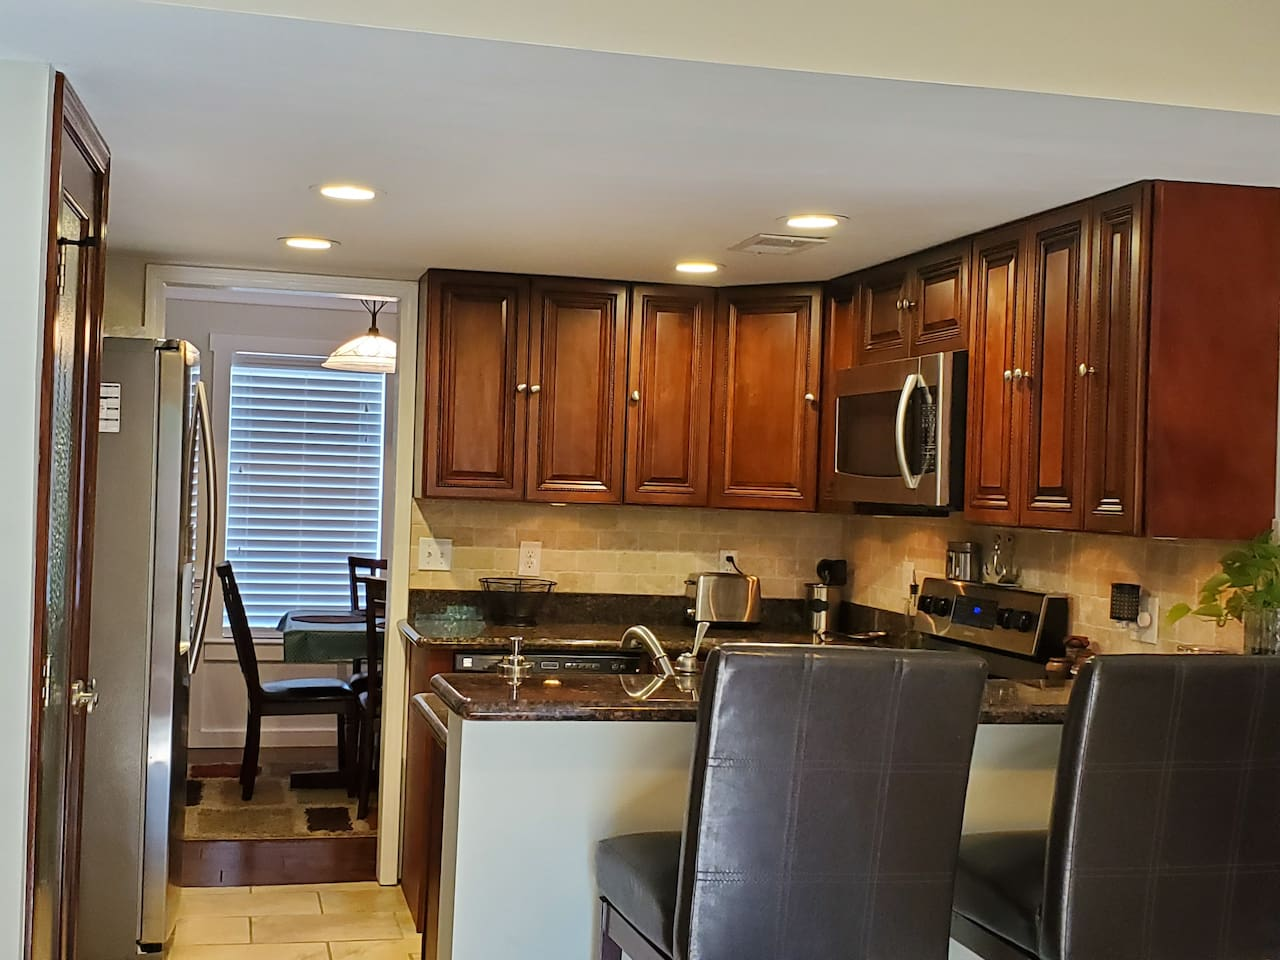 Full kitchen with bare essentials you need to cook meals and keep things refrigerated including a dishwasher, Microwave, and an oven with glass top stove. There is a pantry for storing food also.